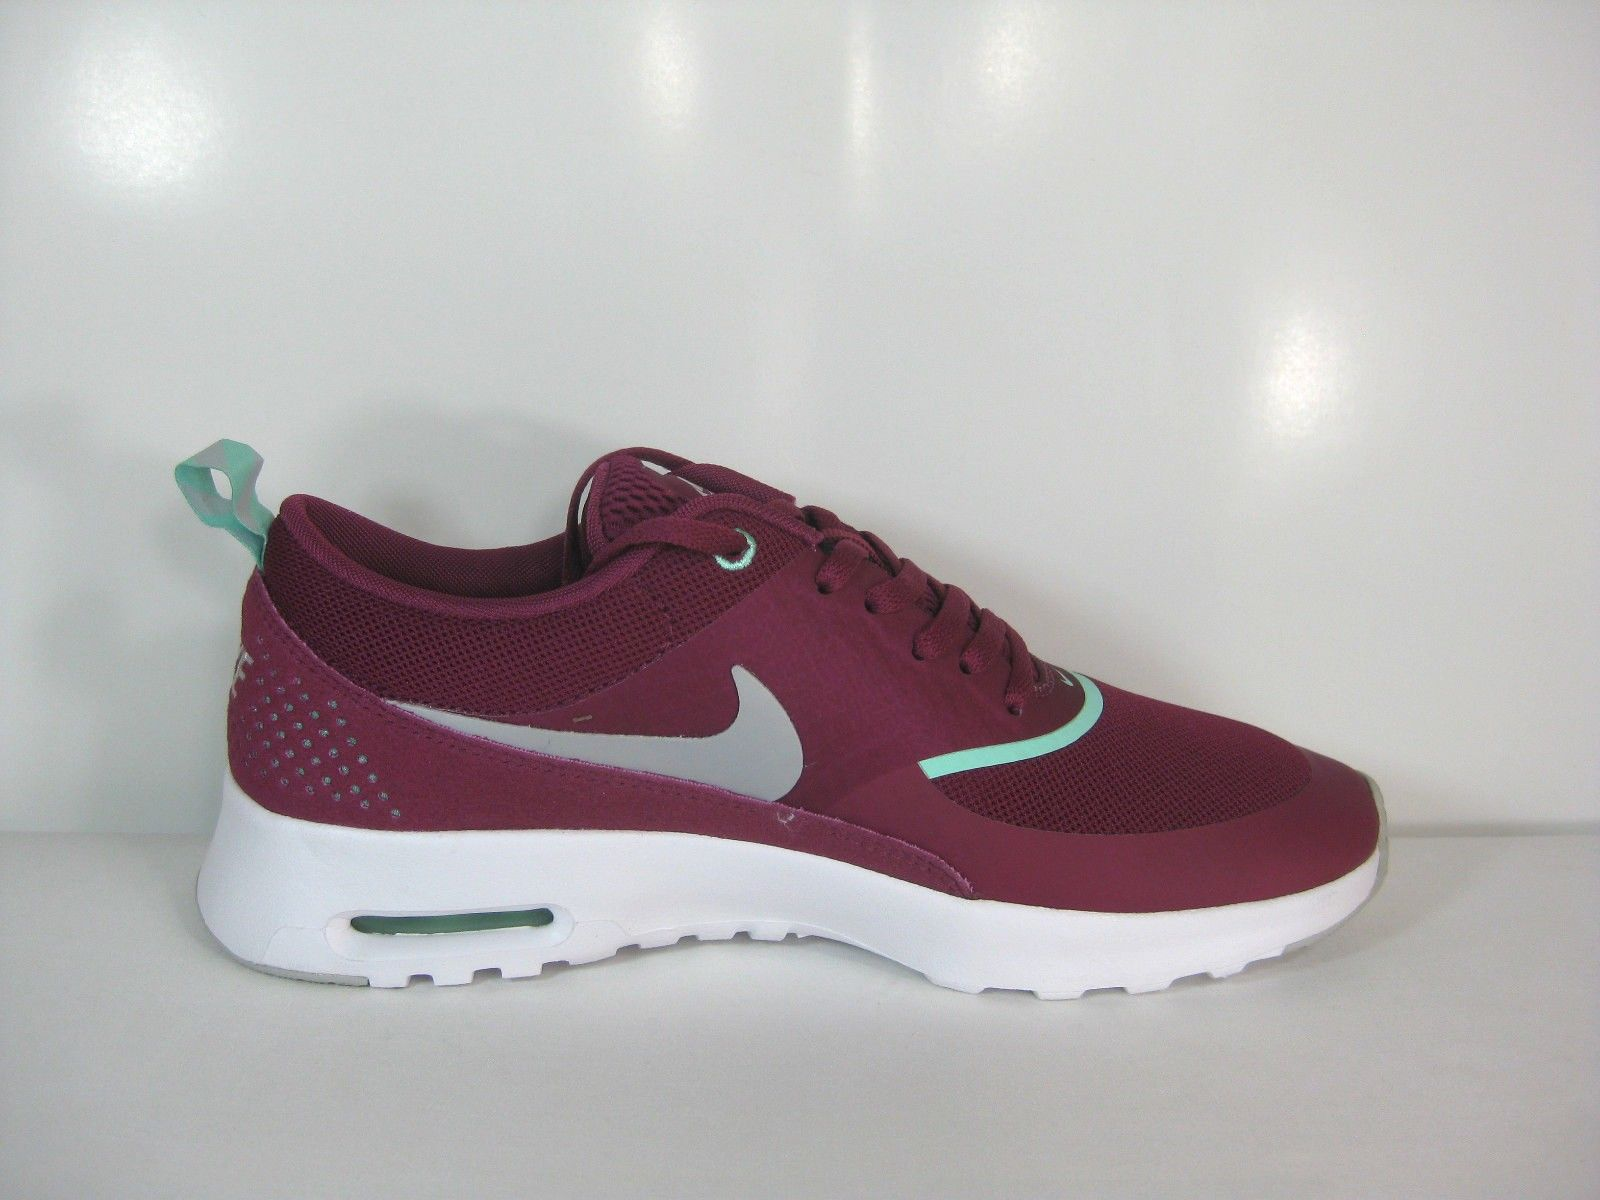 Nike Air Max Thea Womens 599409 609 Vivid Pink White Running